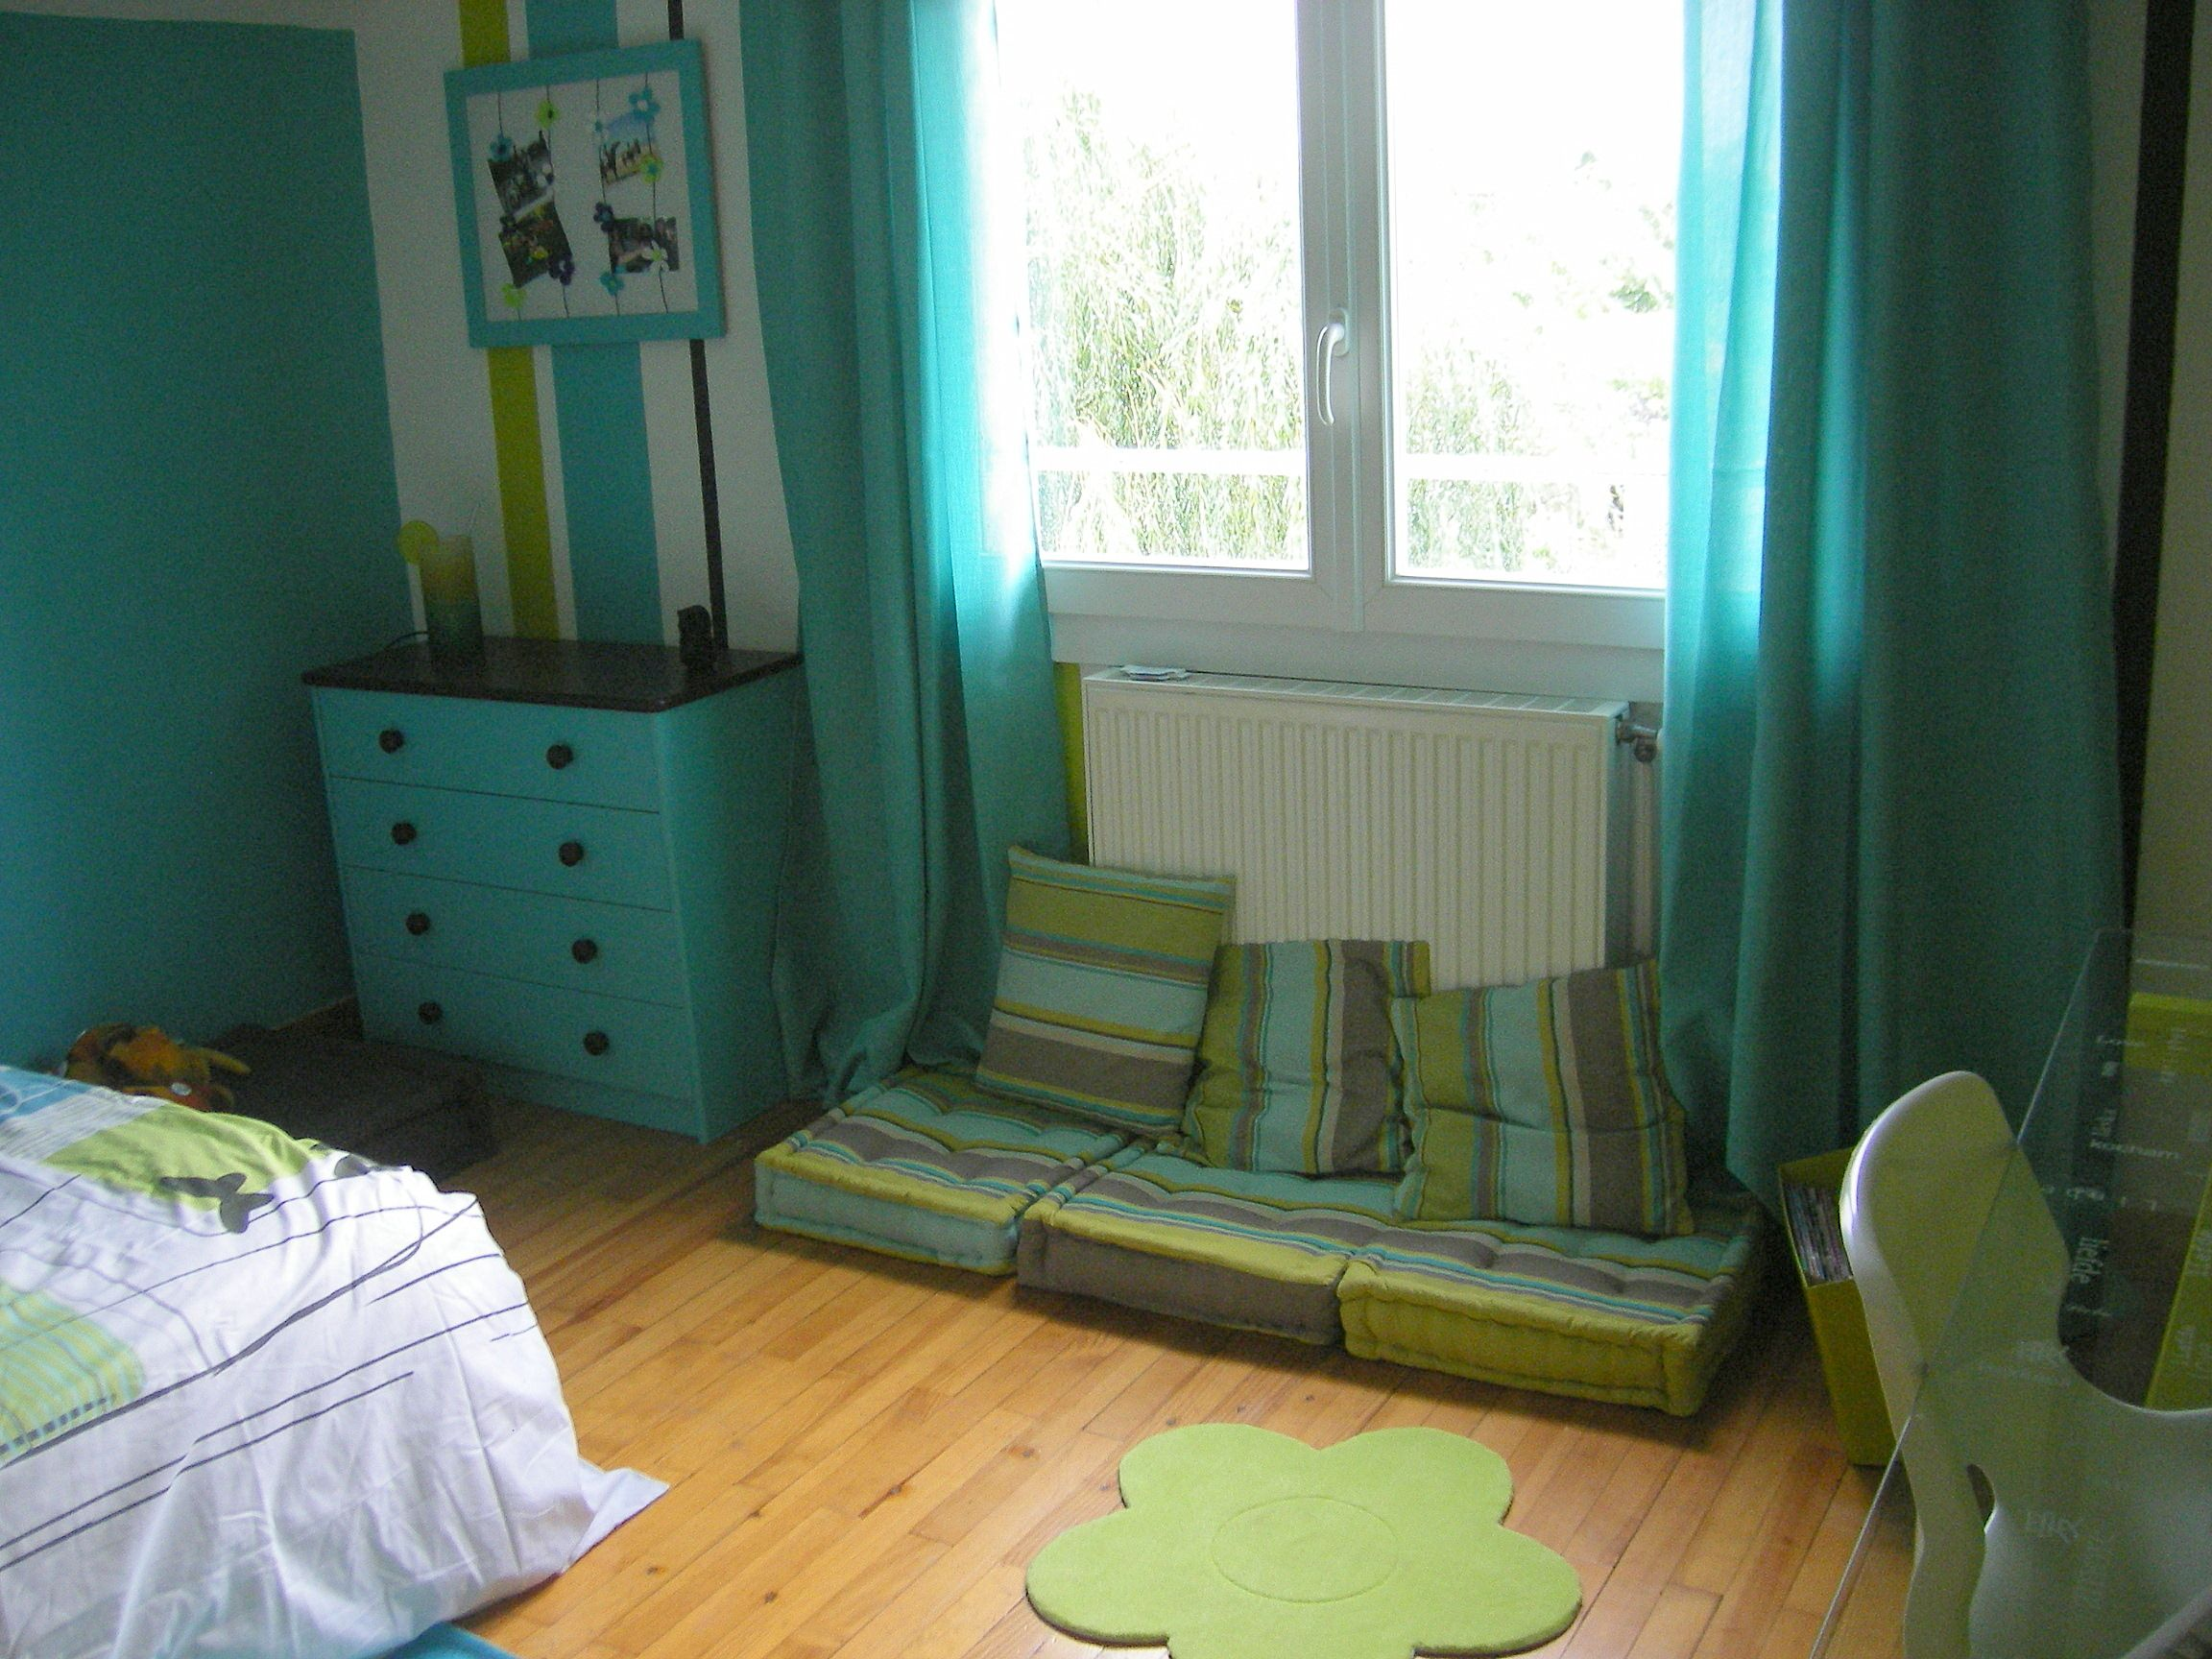 chambre ado anis chocolat turquoise chambre ado pinterest chambre ado ado et turquoise. Black Bedroom Furniture Sets. Home Design Ideas